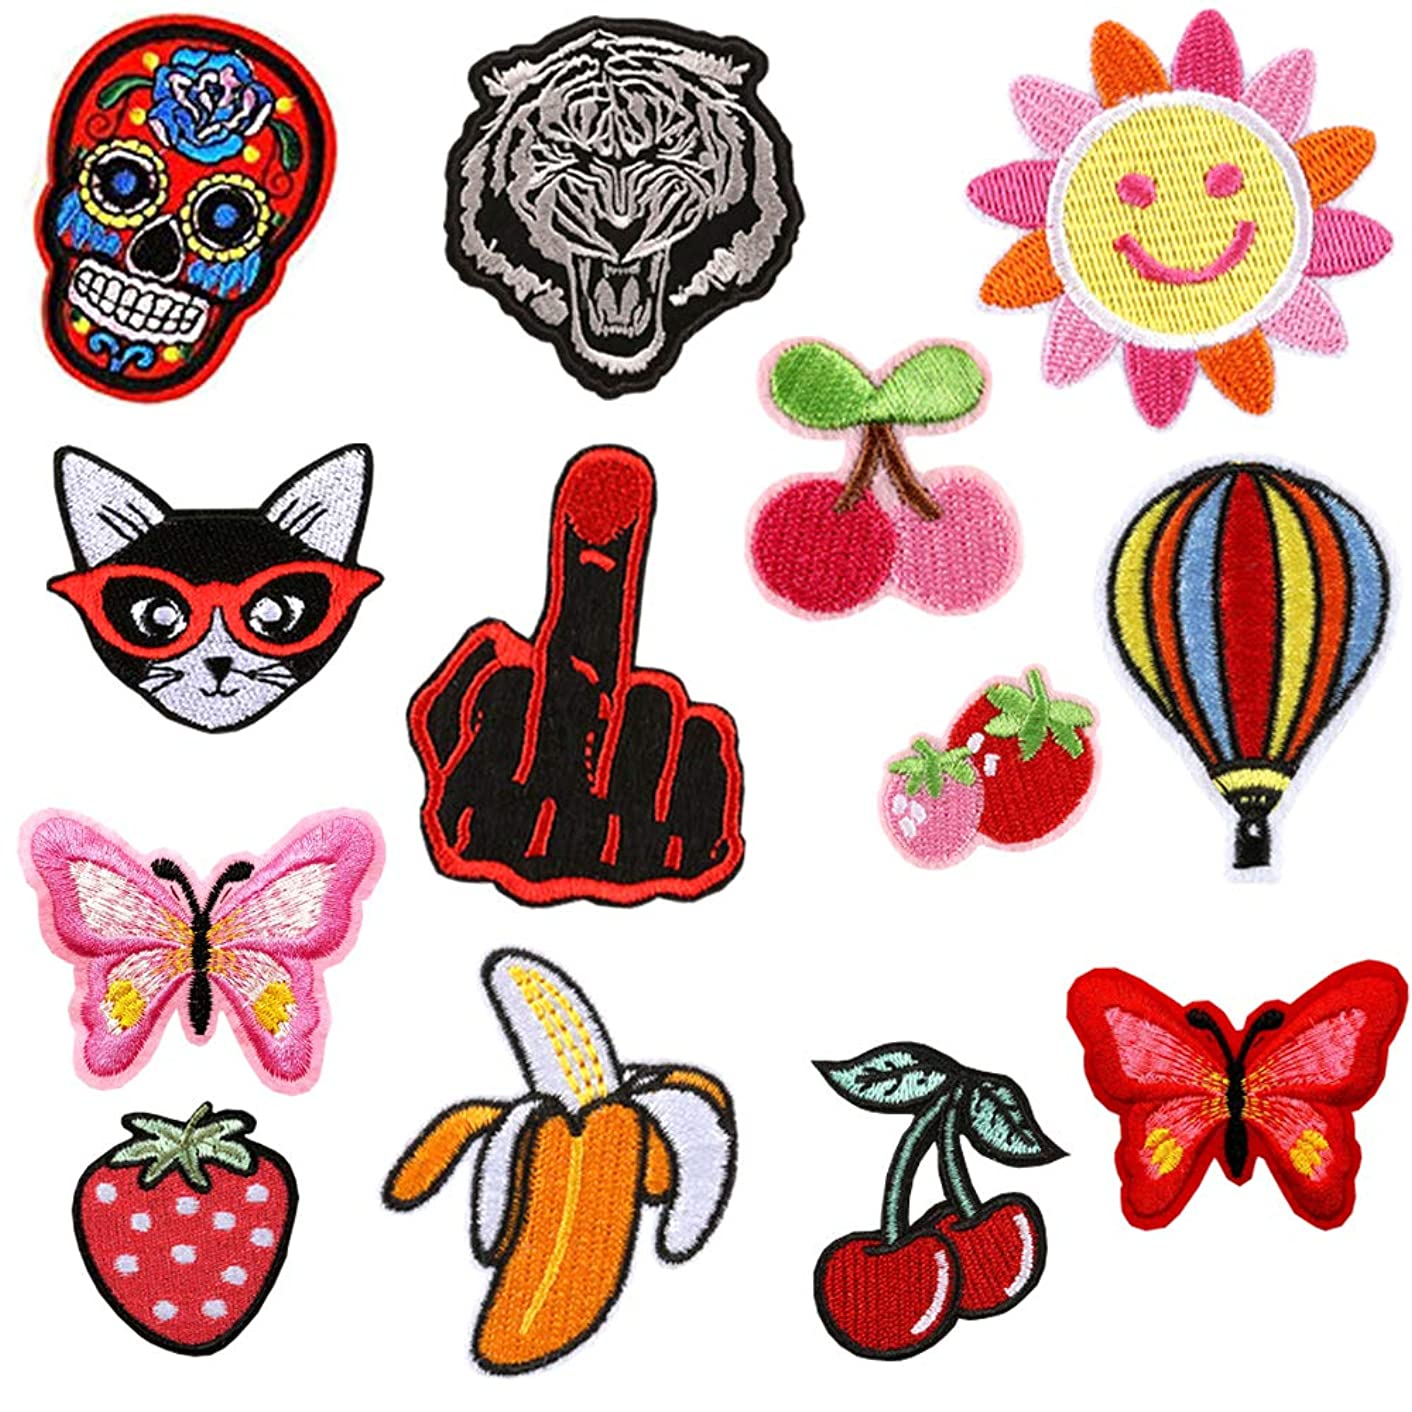 Cute Cat Fruit Butterfly Sew Iron on Patches Embroidery Applique Patches for Arts Crafts DIY Decor, Jeans, Jackets, Clothing (13 Pcs)